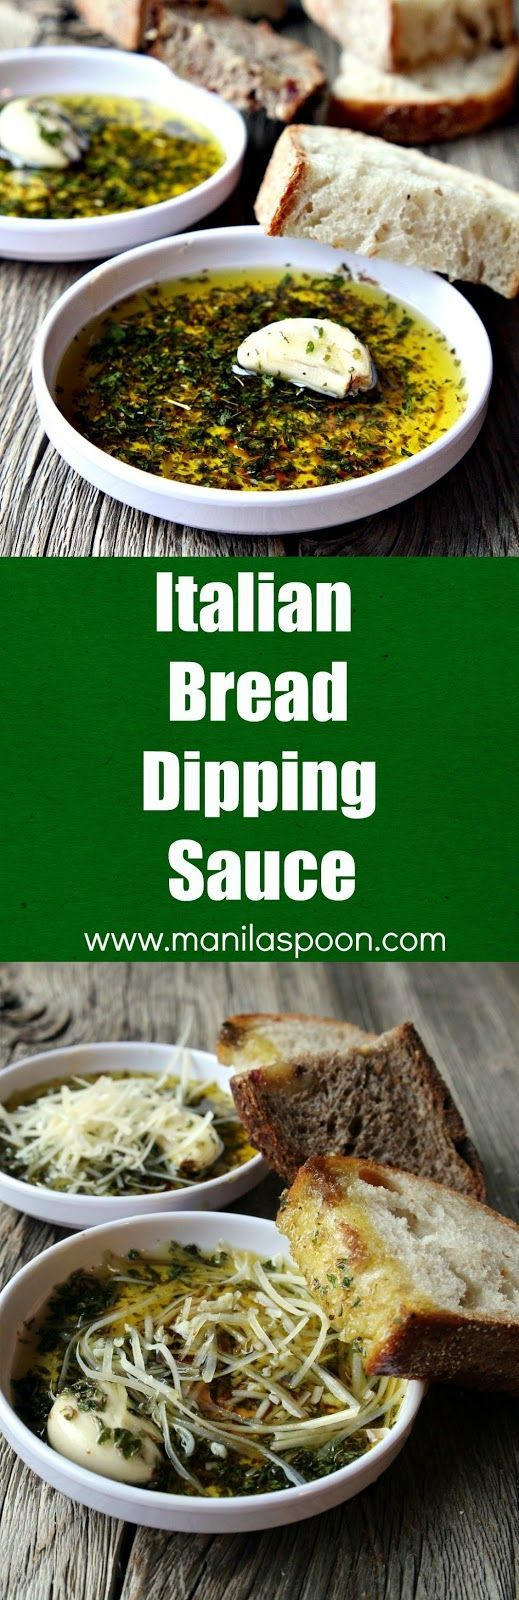 Restaurant-style sauce with olive oil, Italian herbs and balsamic vinegar perfect for dipping your favorite crusty bread. Mix it up with your favorite herbs and…